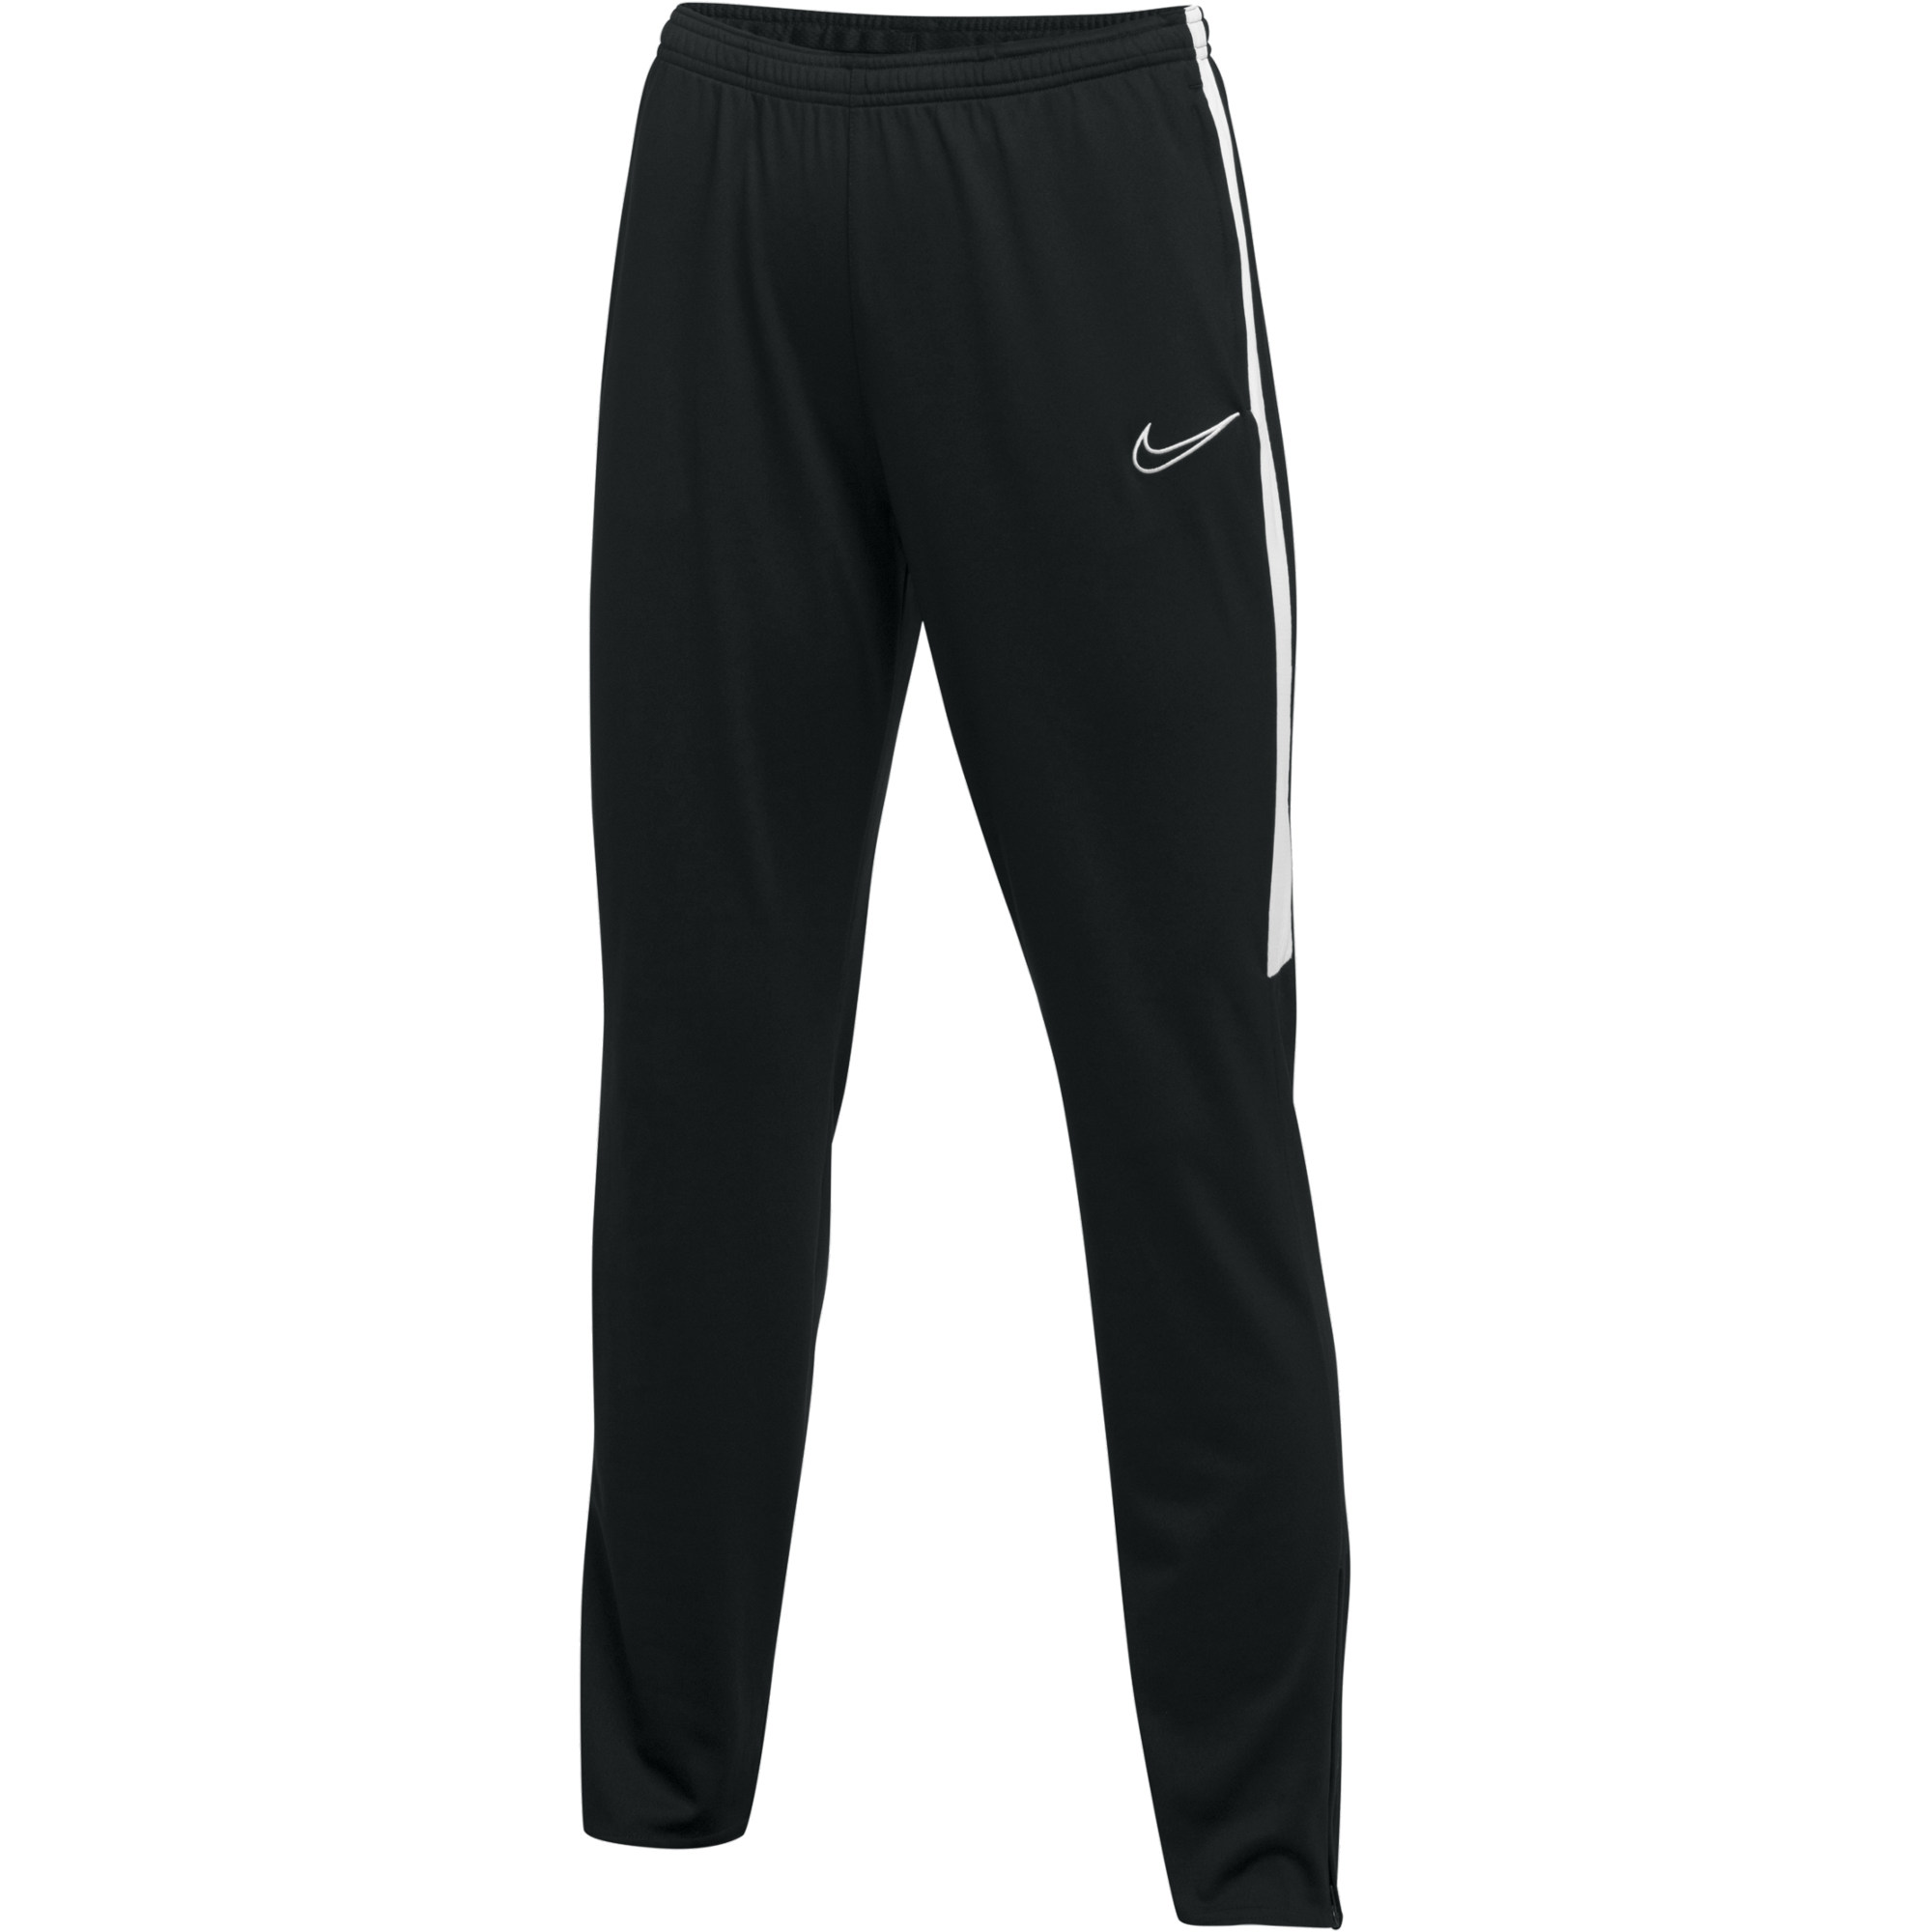 Academy-19-Football-Pant-Black